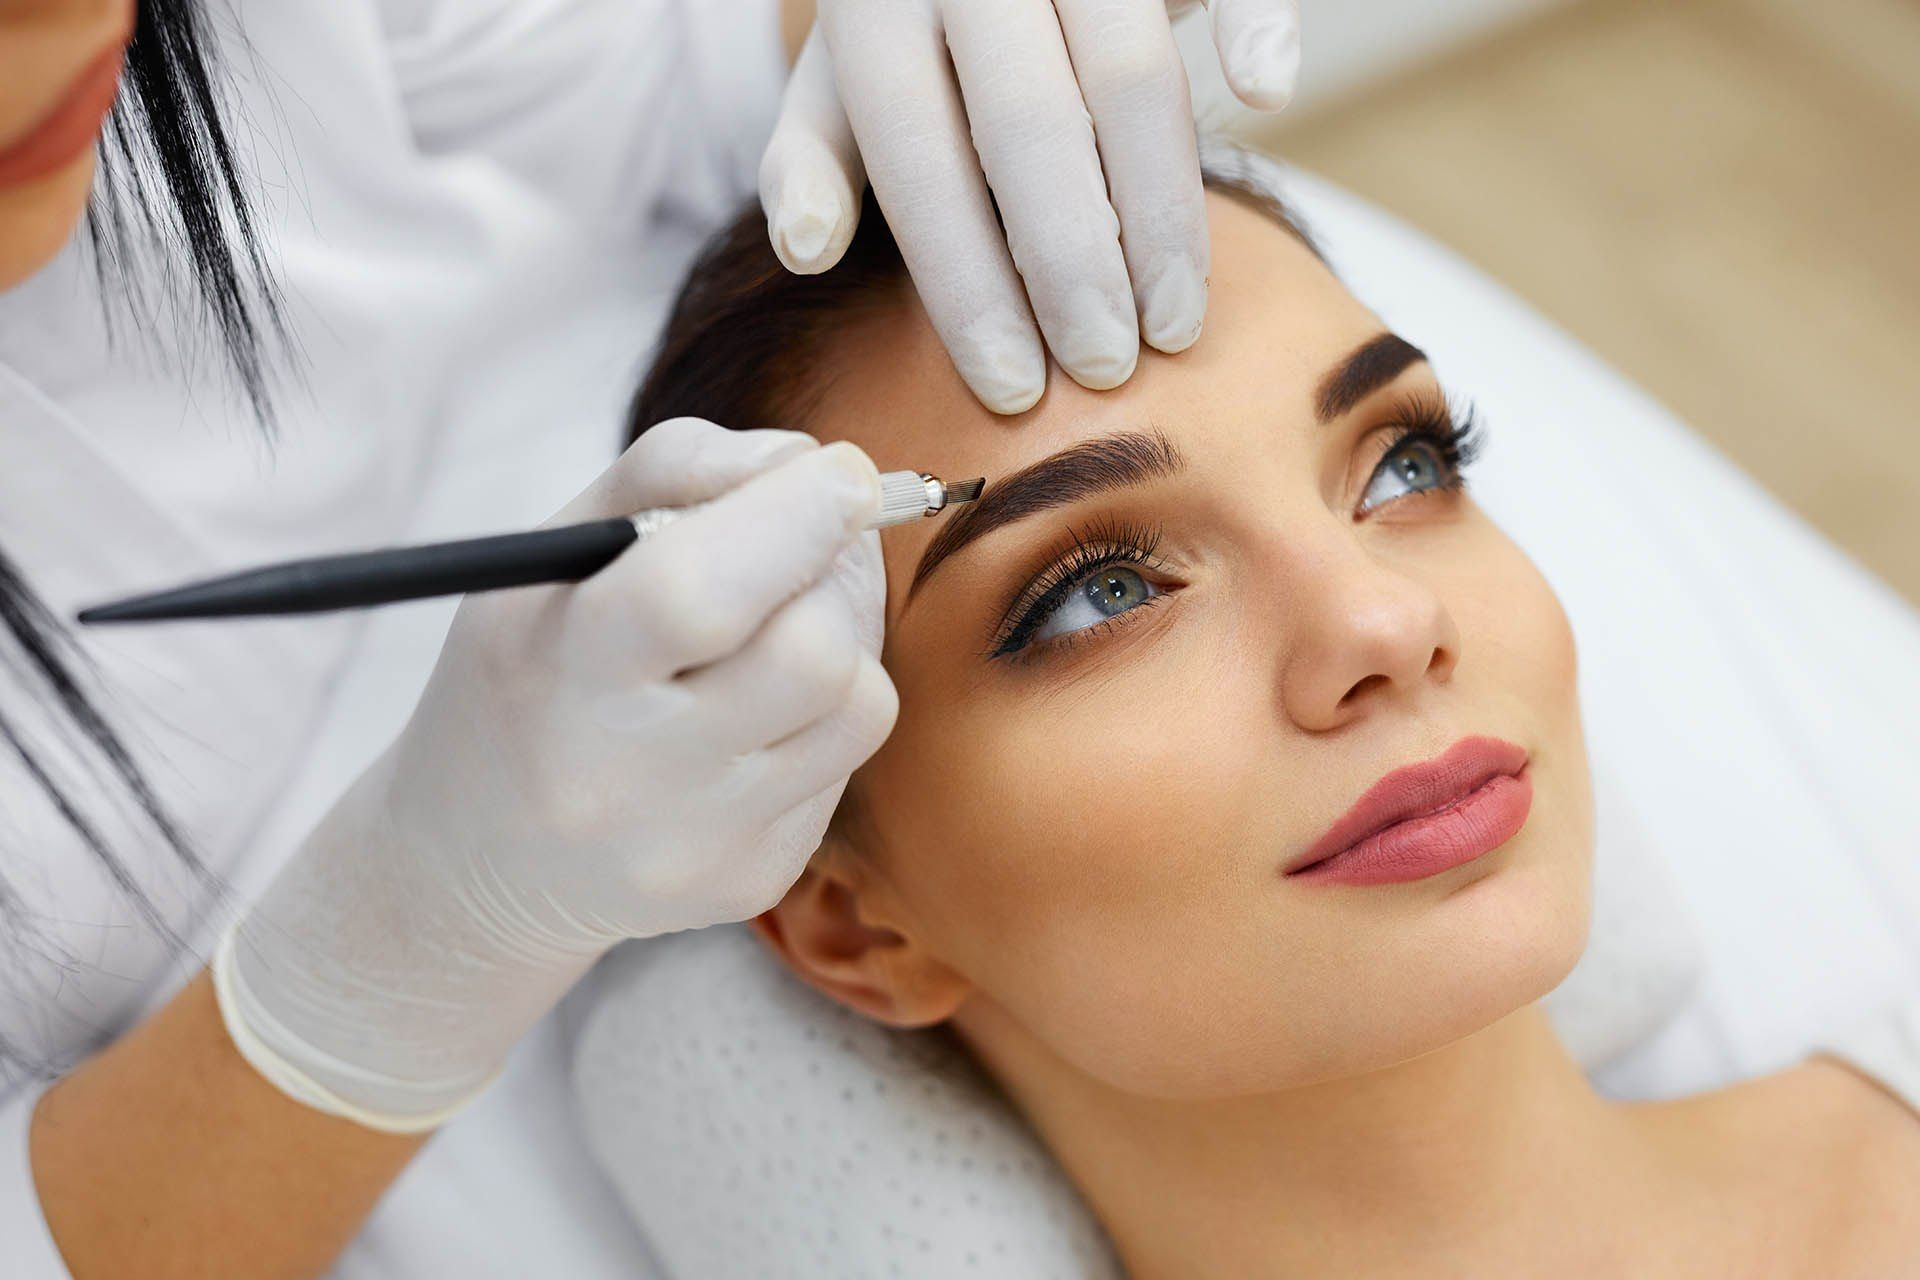 Few Things You Should Know About Permanent Makeup